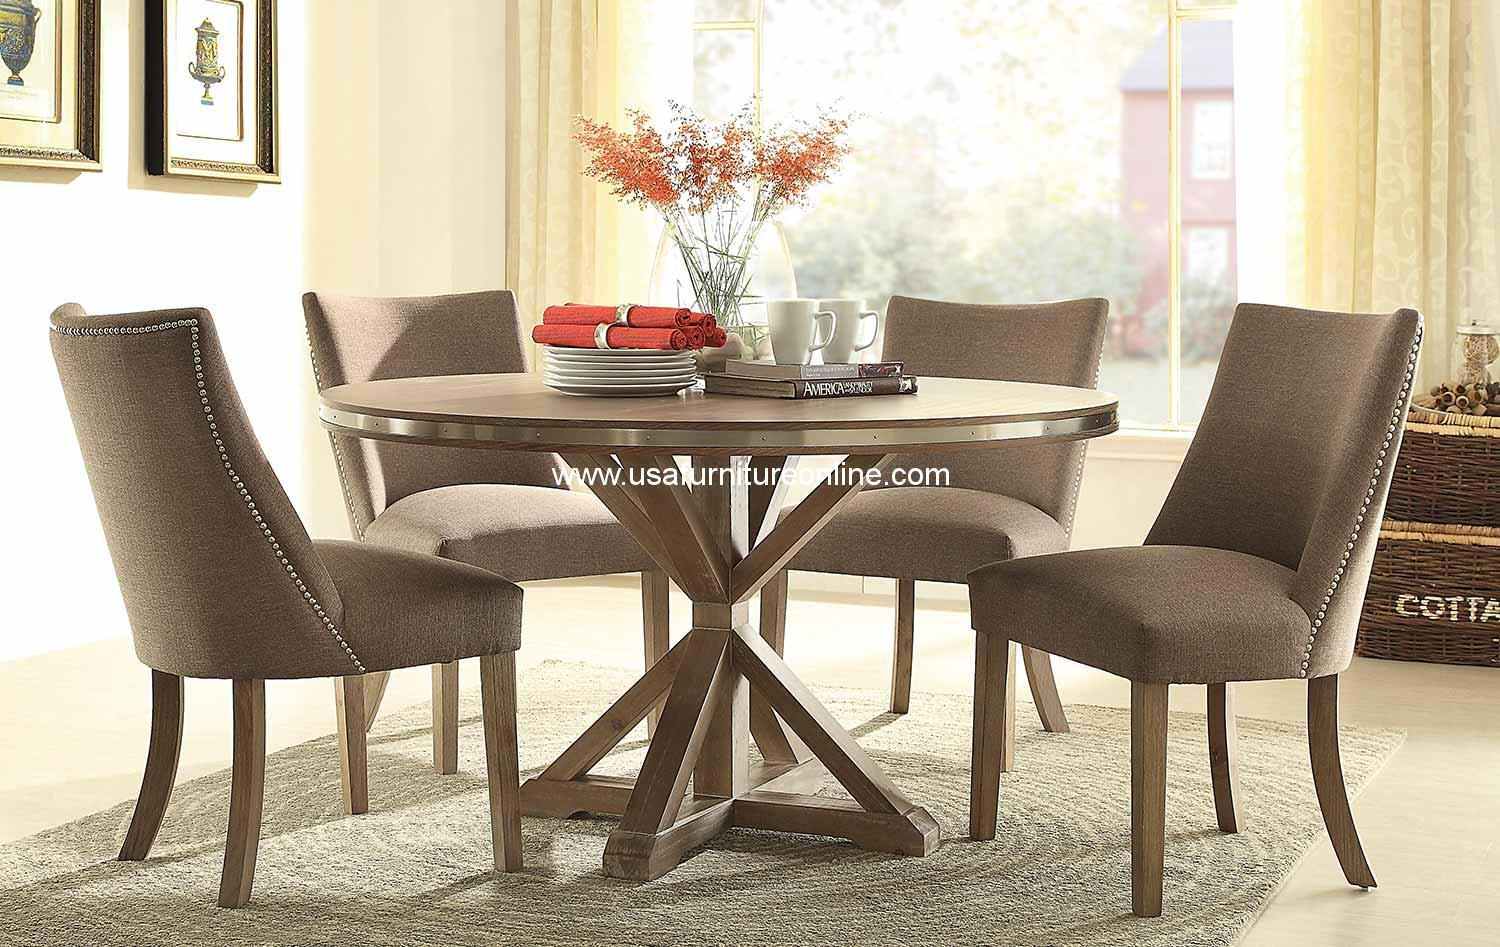 5 Piece Beaugrand Round Modern Dining Set USA Furniture  : Homelegance 5 Piece Beaugrand Round Modern Dining Set from www.usafurnitureonline.com size 1500 x 947 jpeg 184kB